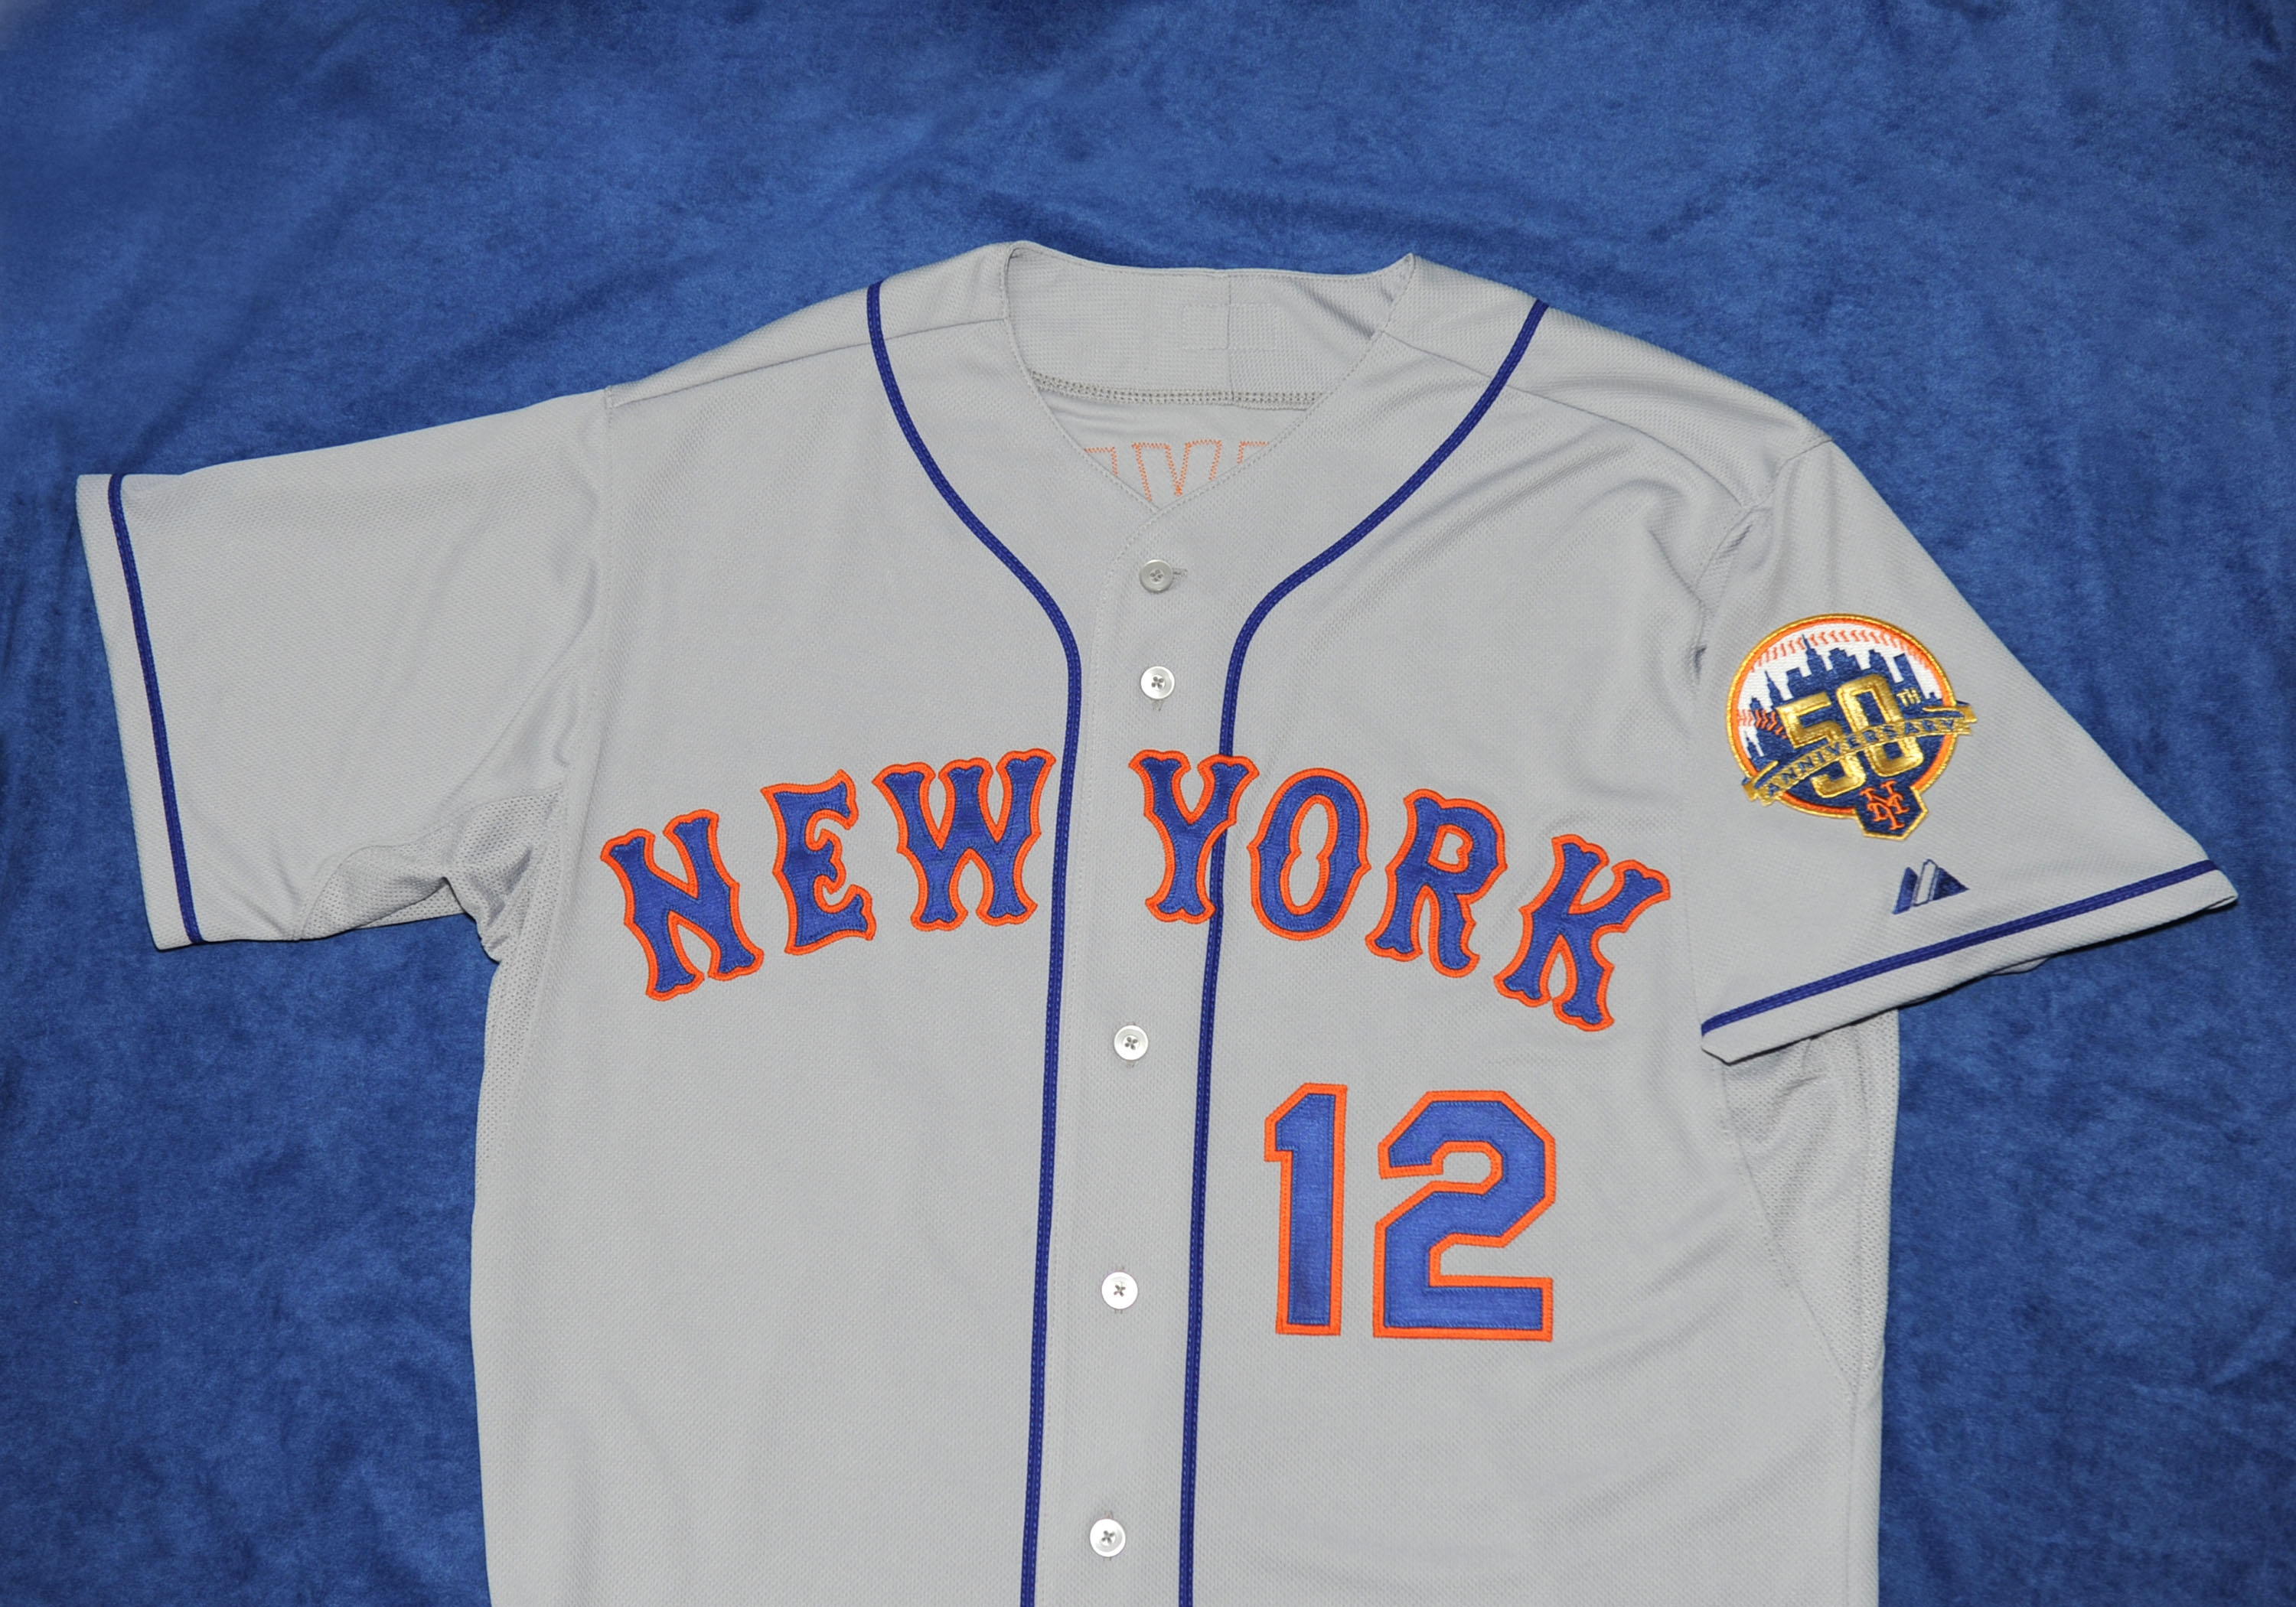 5feba4c1a4dc7 The black drop shadow has been removed from the white, pinstriped, and gray  jerseys. You can see high-res versions of those jerseys here, here, and ...